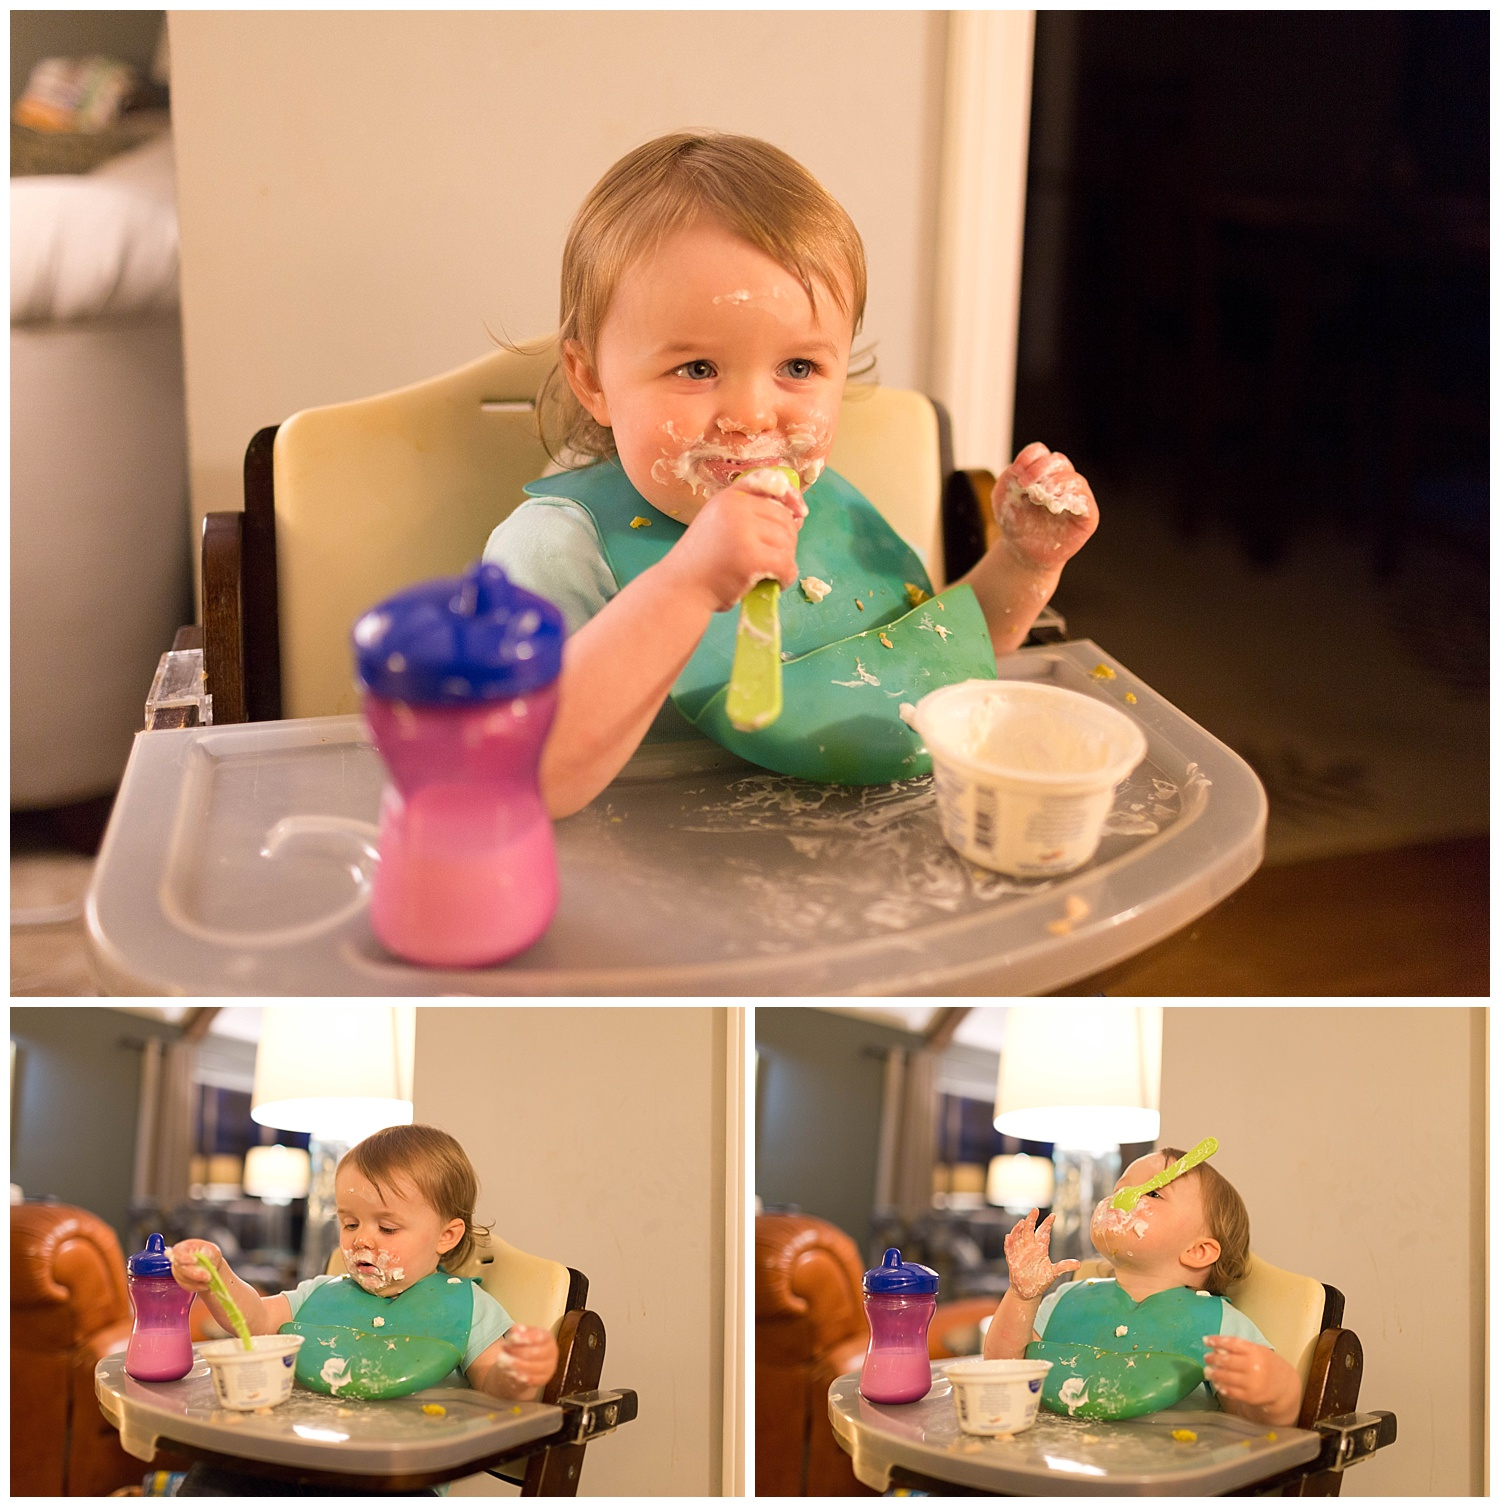 baby girl learning to eating with a spoon, making mess with yogurt